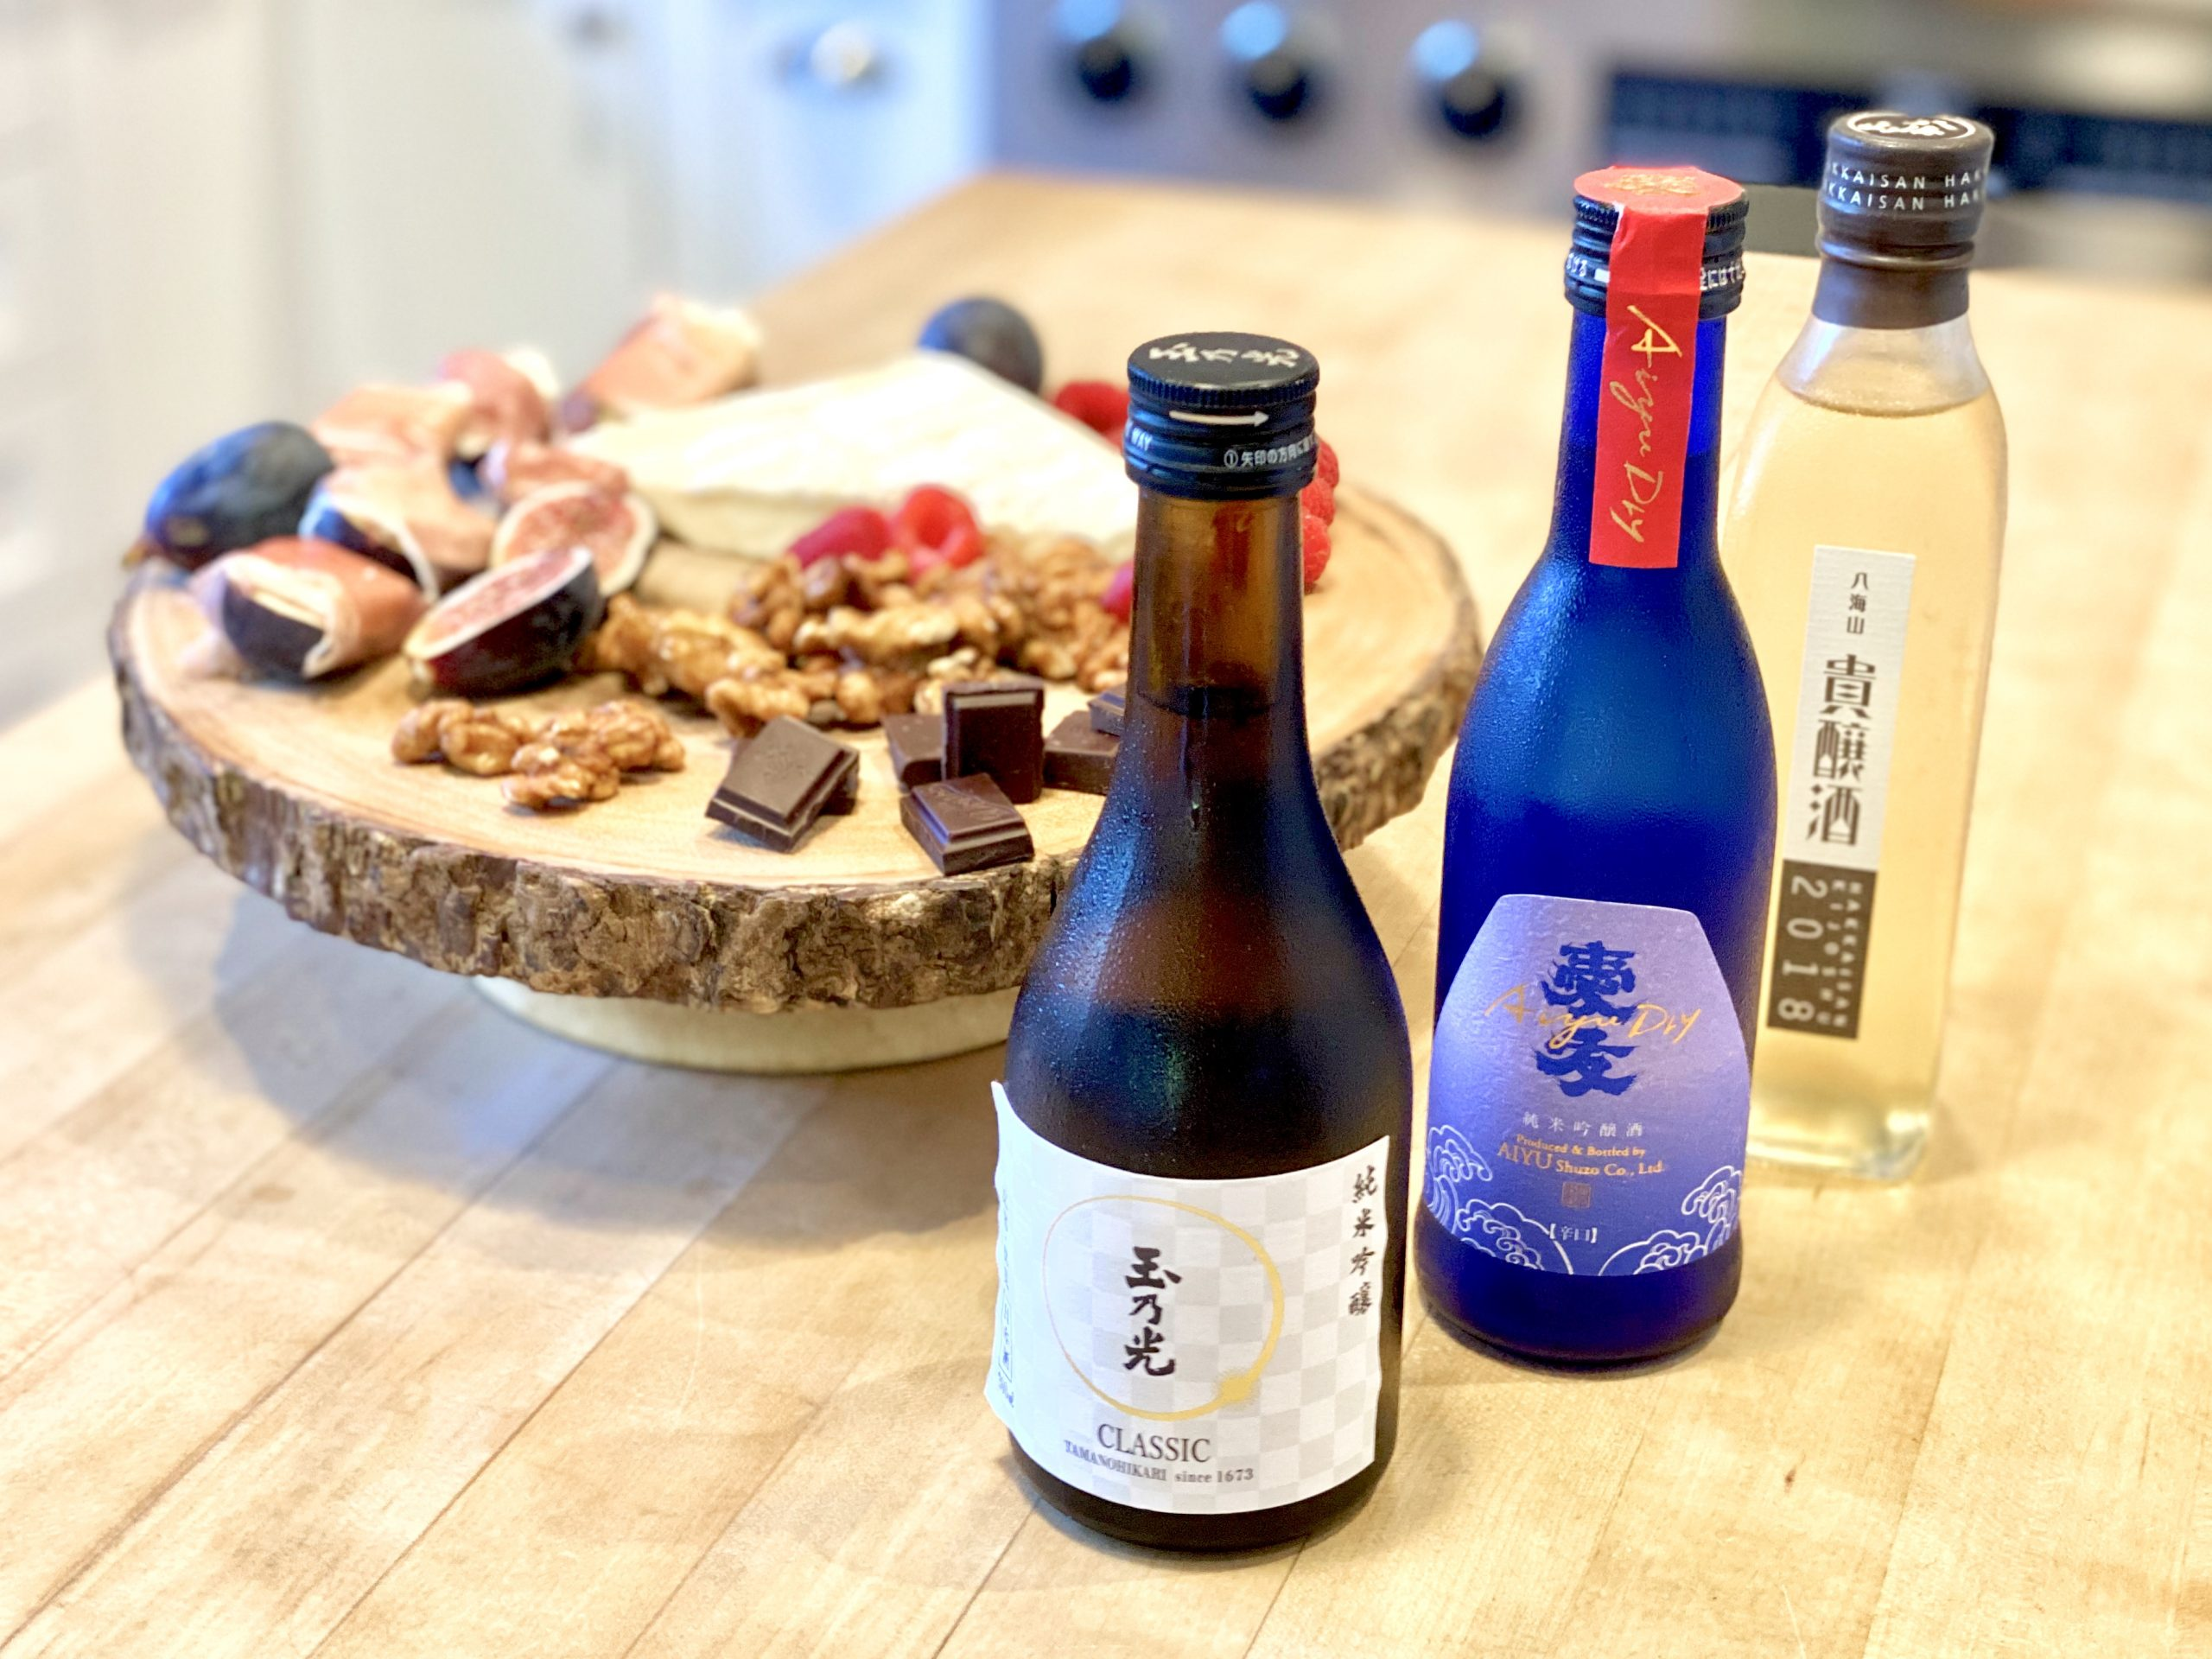 three bottles of sake from different areas of Japan, served cold with food pairing of cheeses, nuts, berries and chocolate